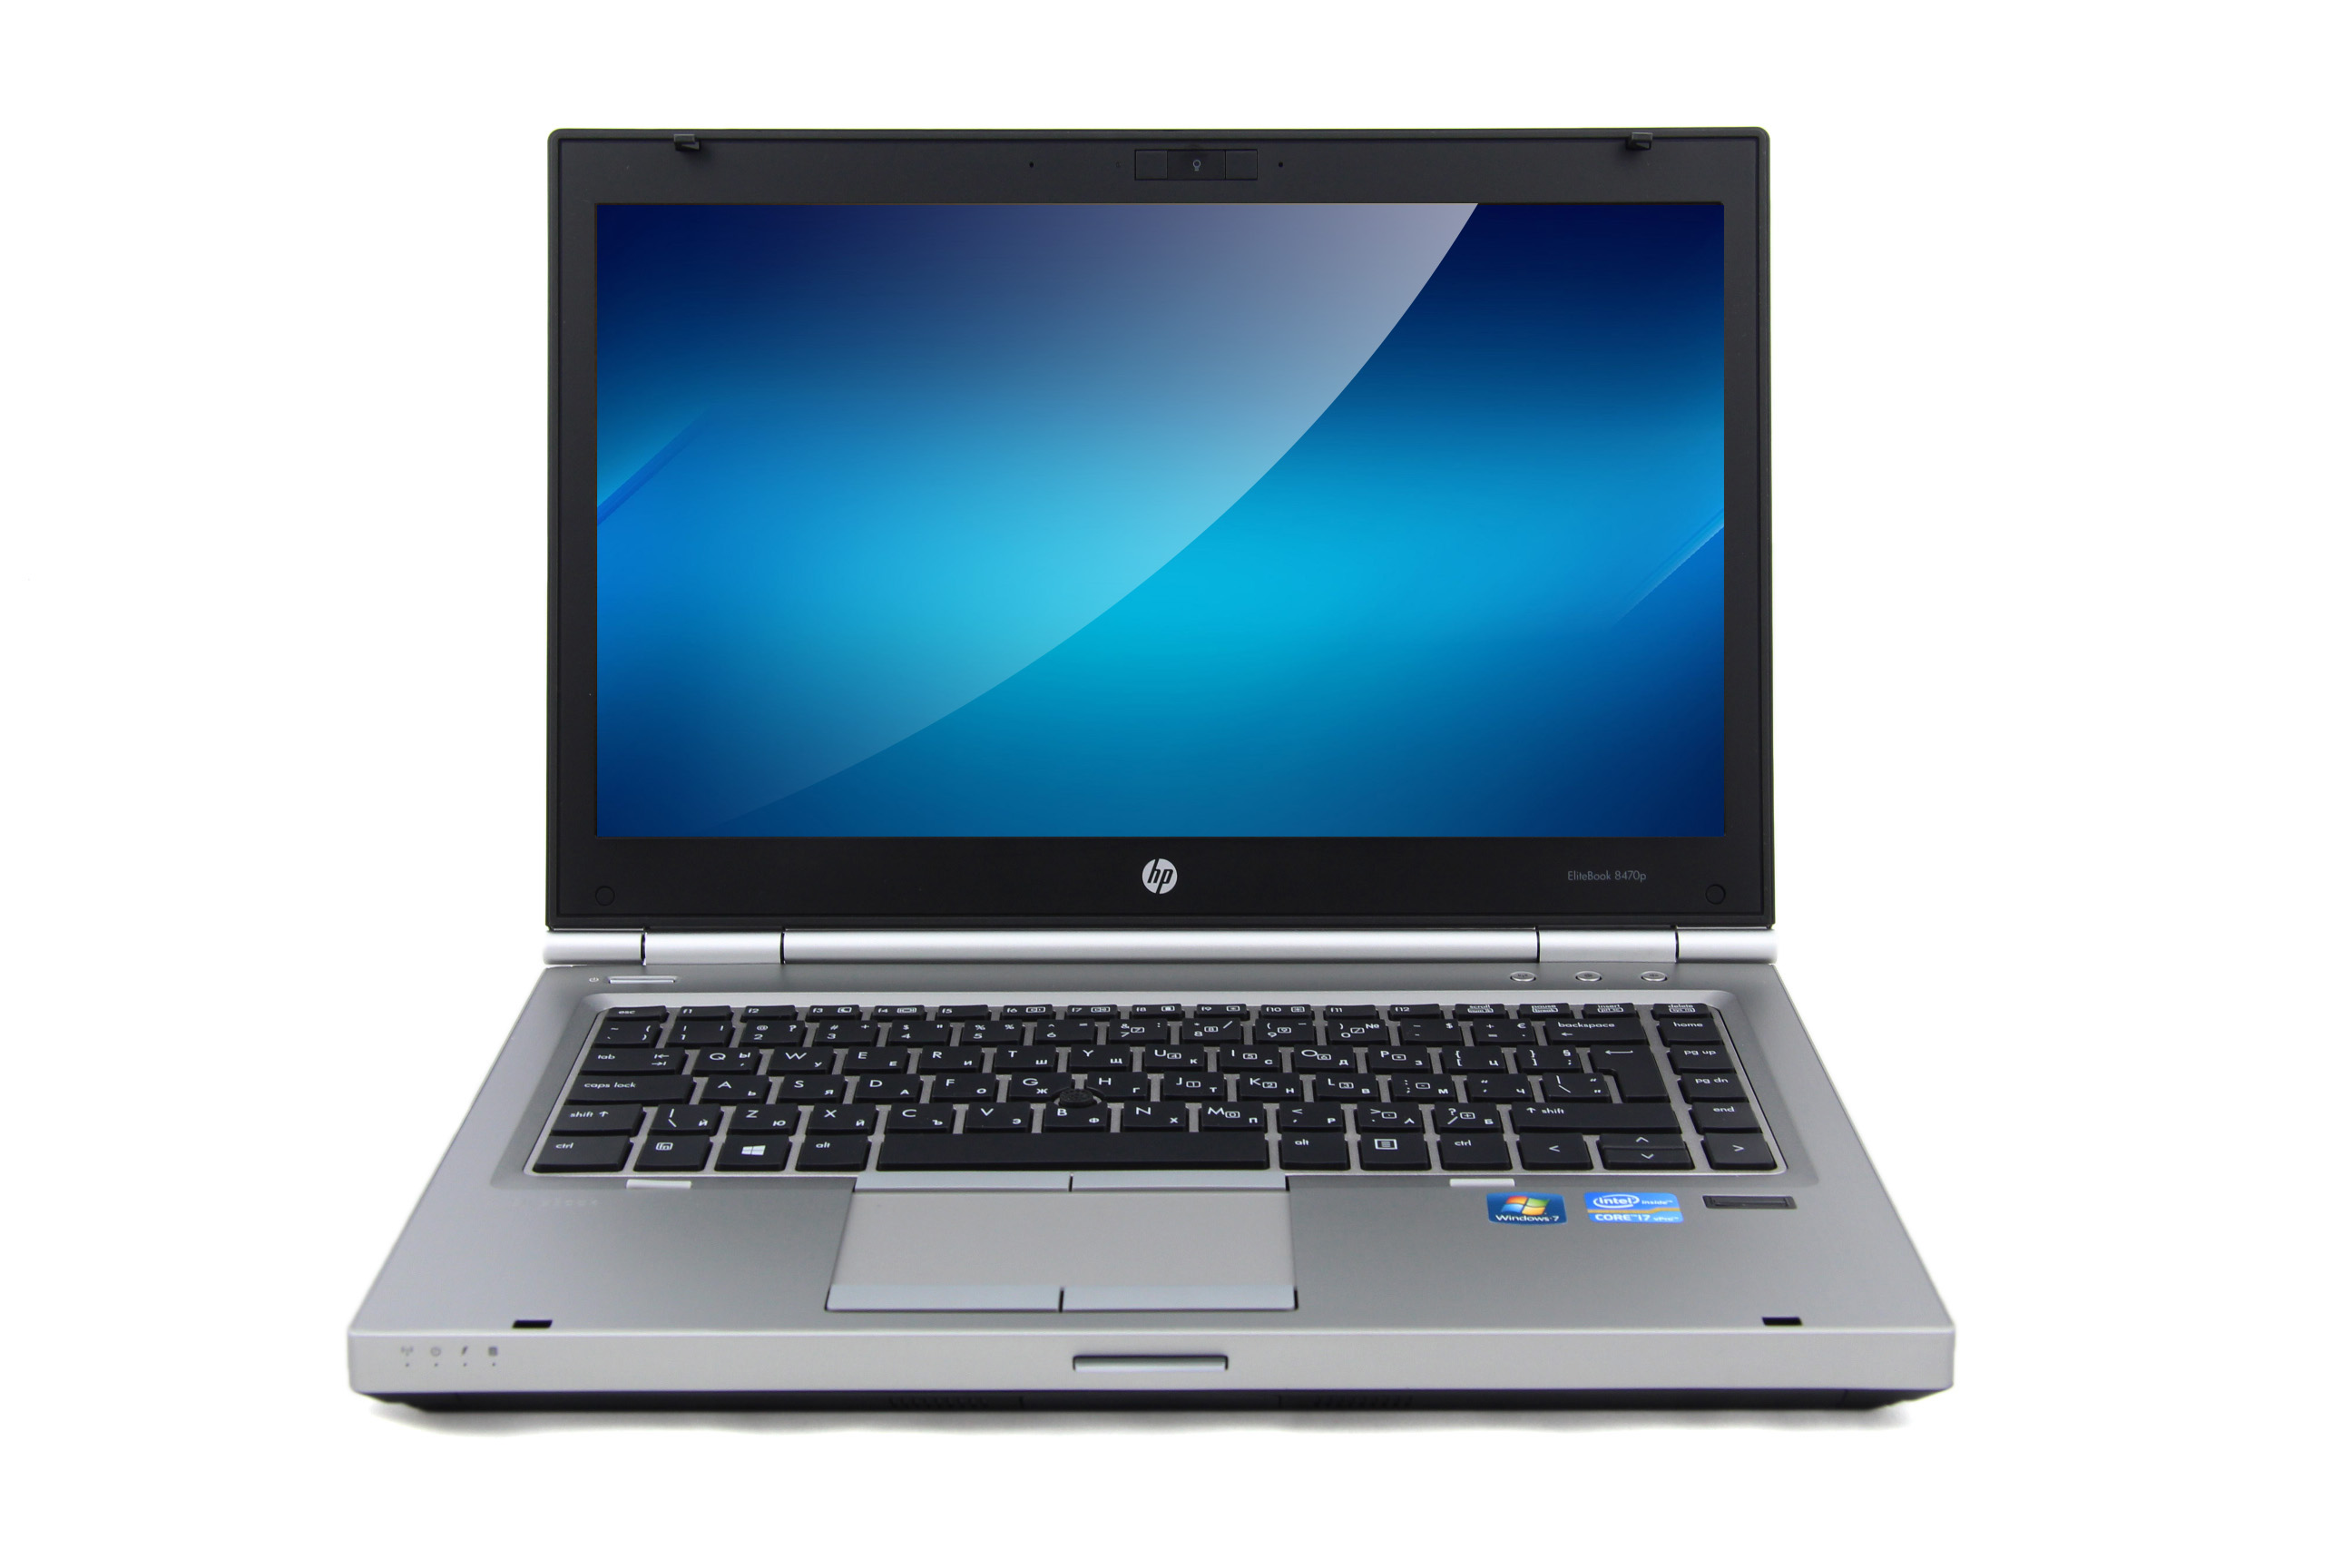 Hp_Elitebook_8470p_i7_Intel_Core2_Duo_E8500